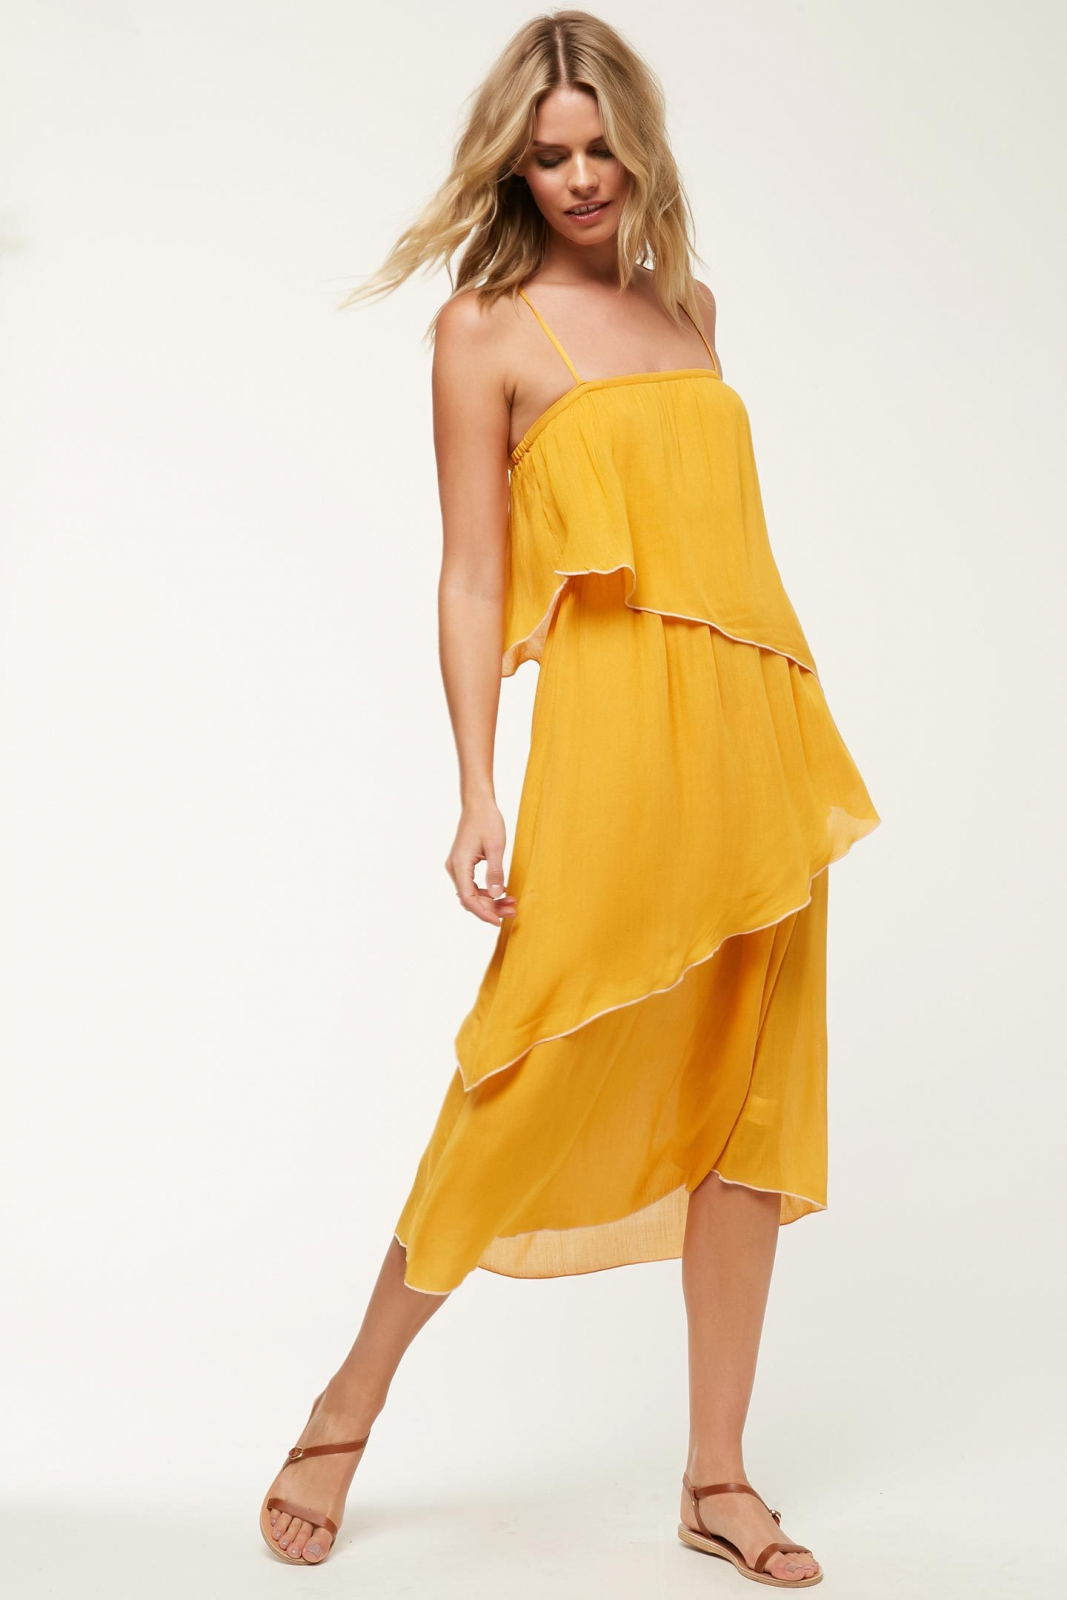 ONEILL LENA DRESS